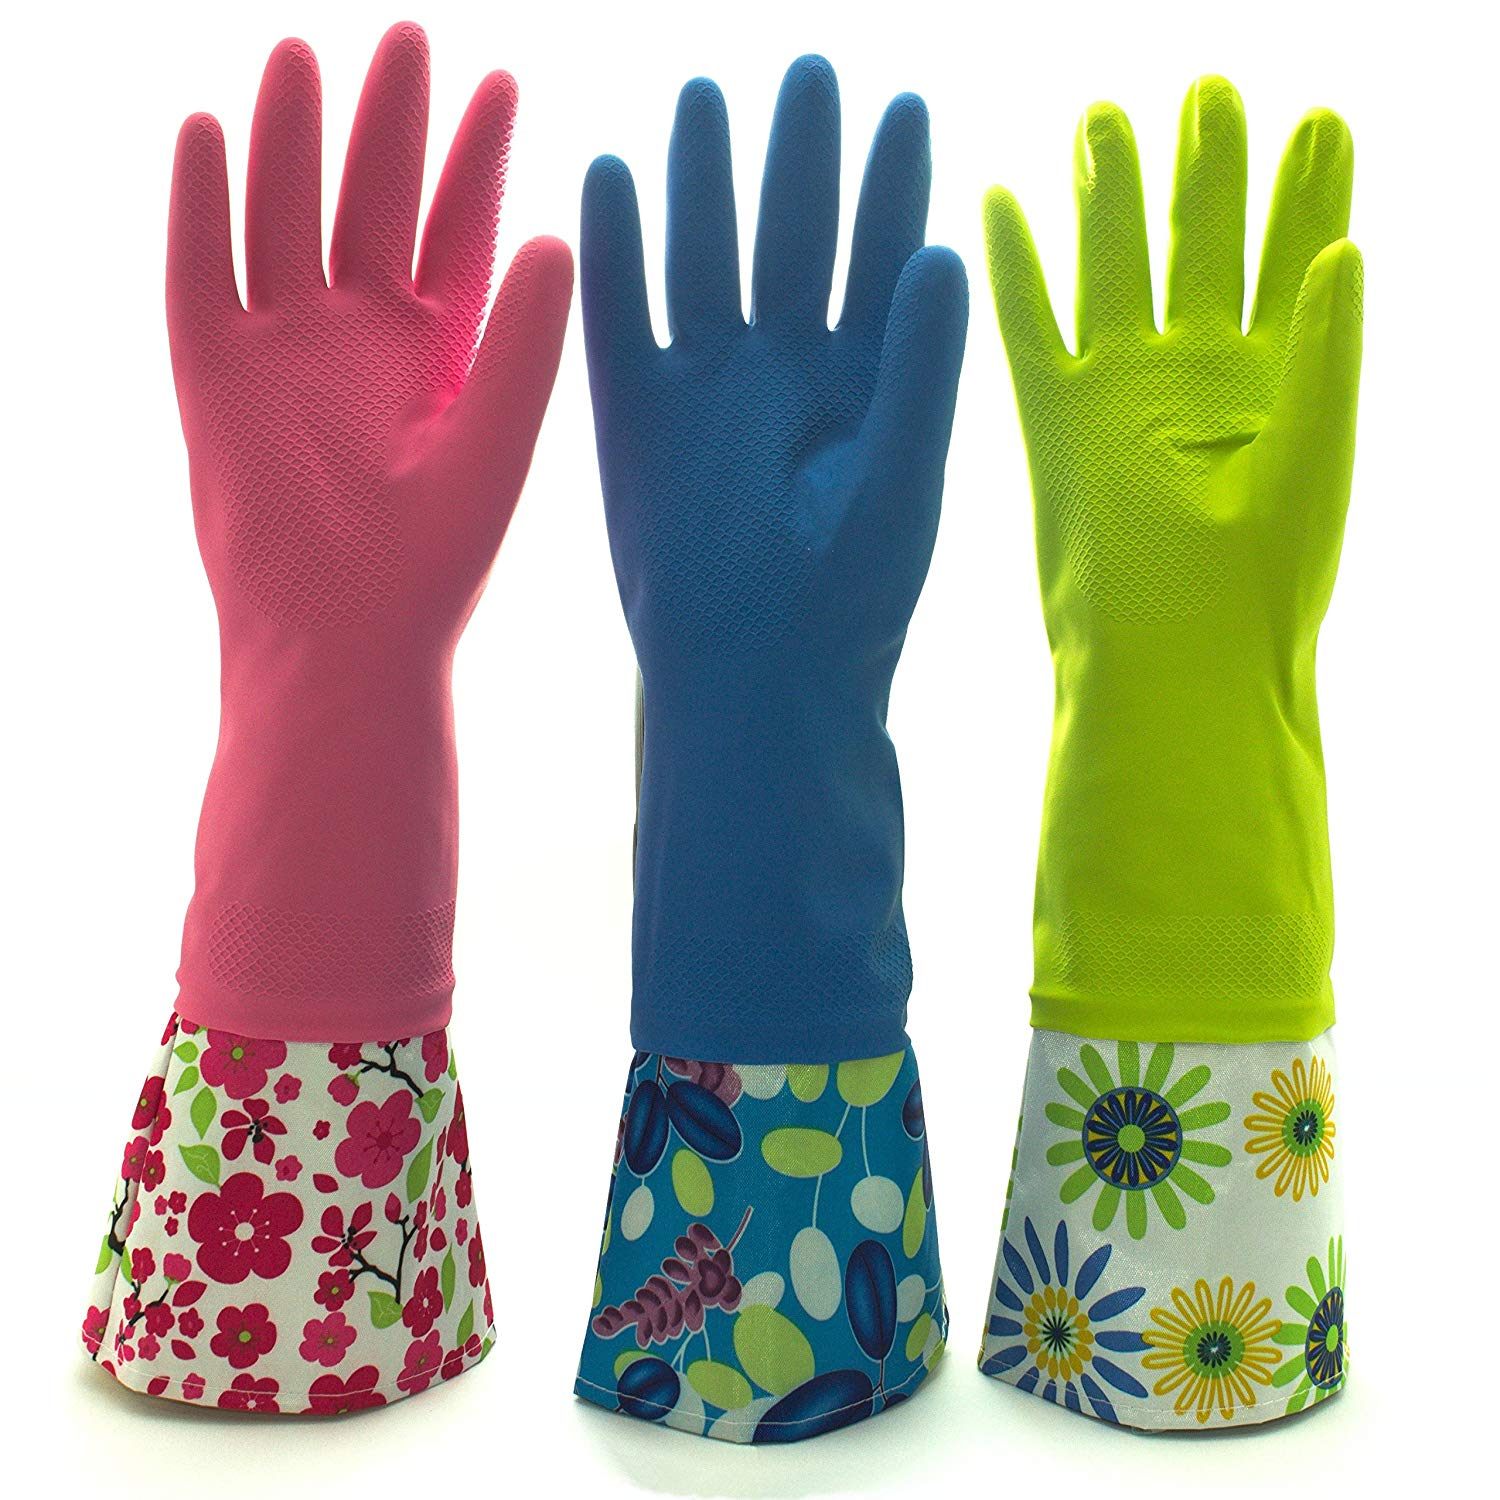 Reusable Waterproof Household Latex Cleaning Gloves, Long Cuff, Kitchen Gloves. 16 inches Long - Pack of 3 (Large)